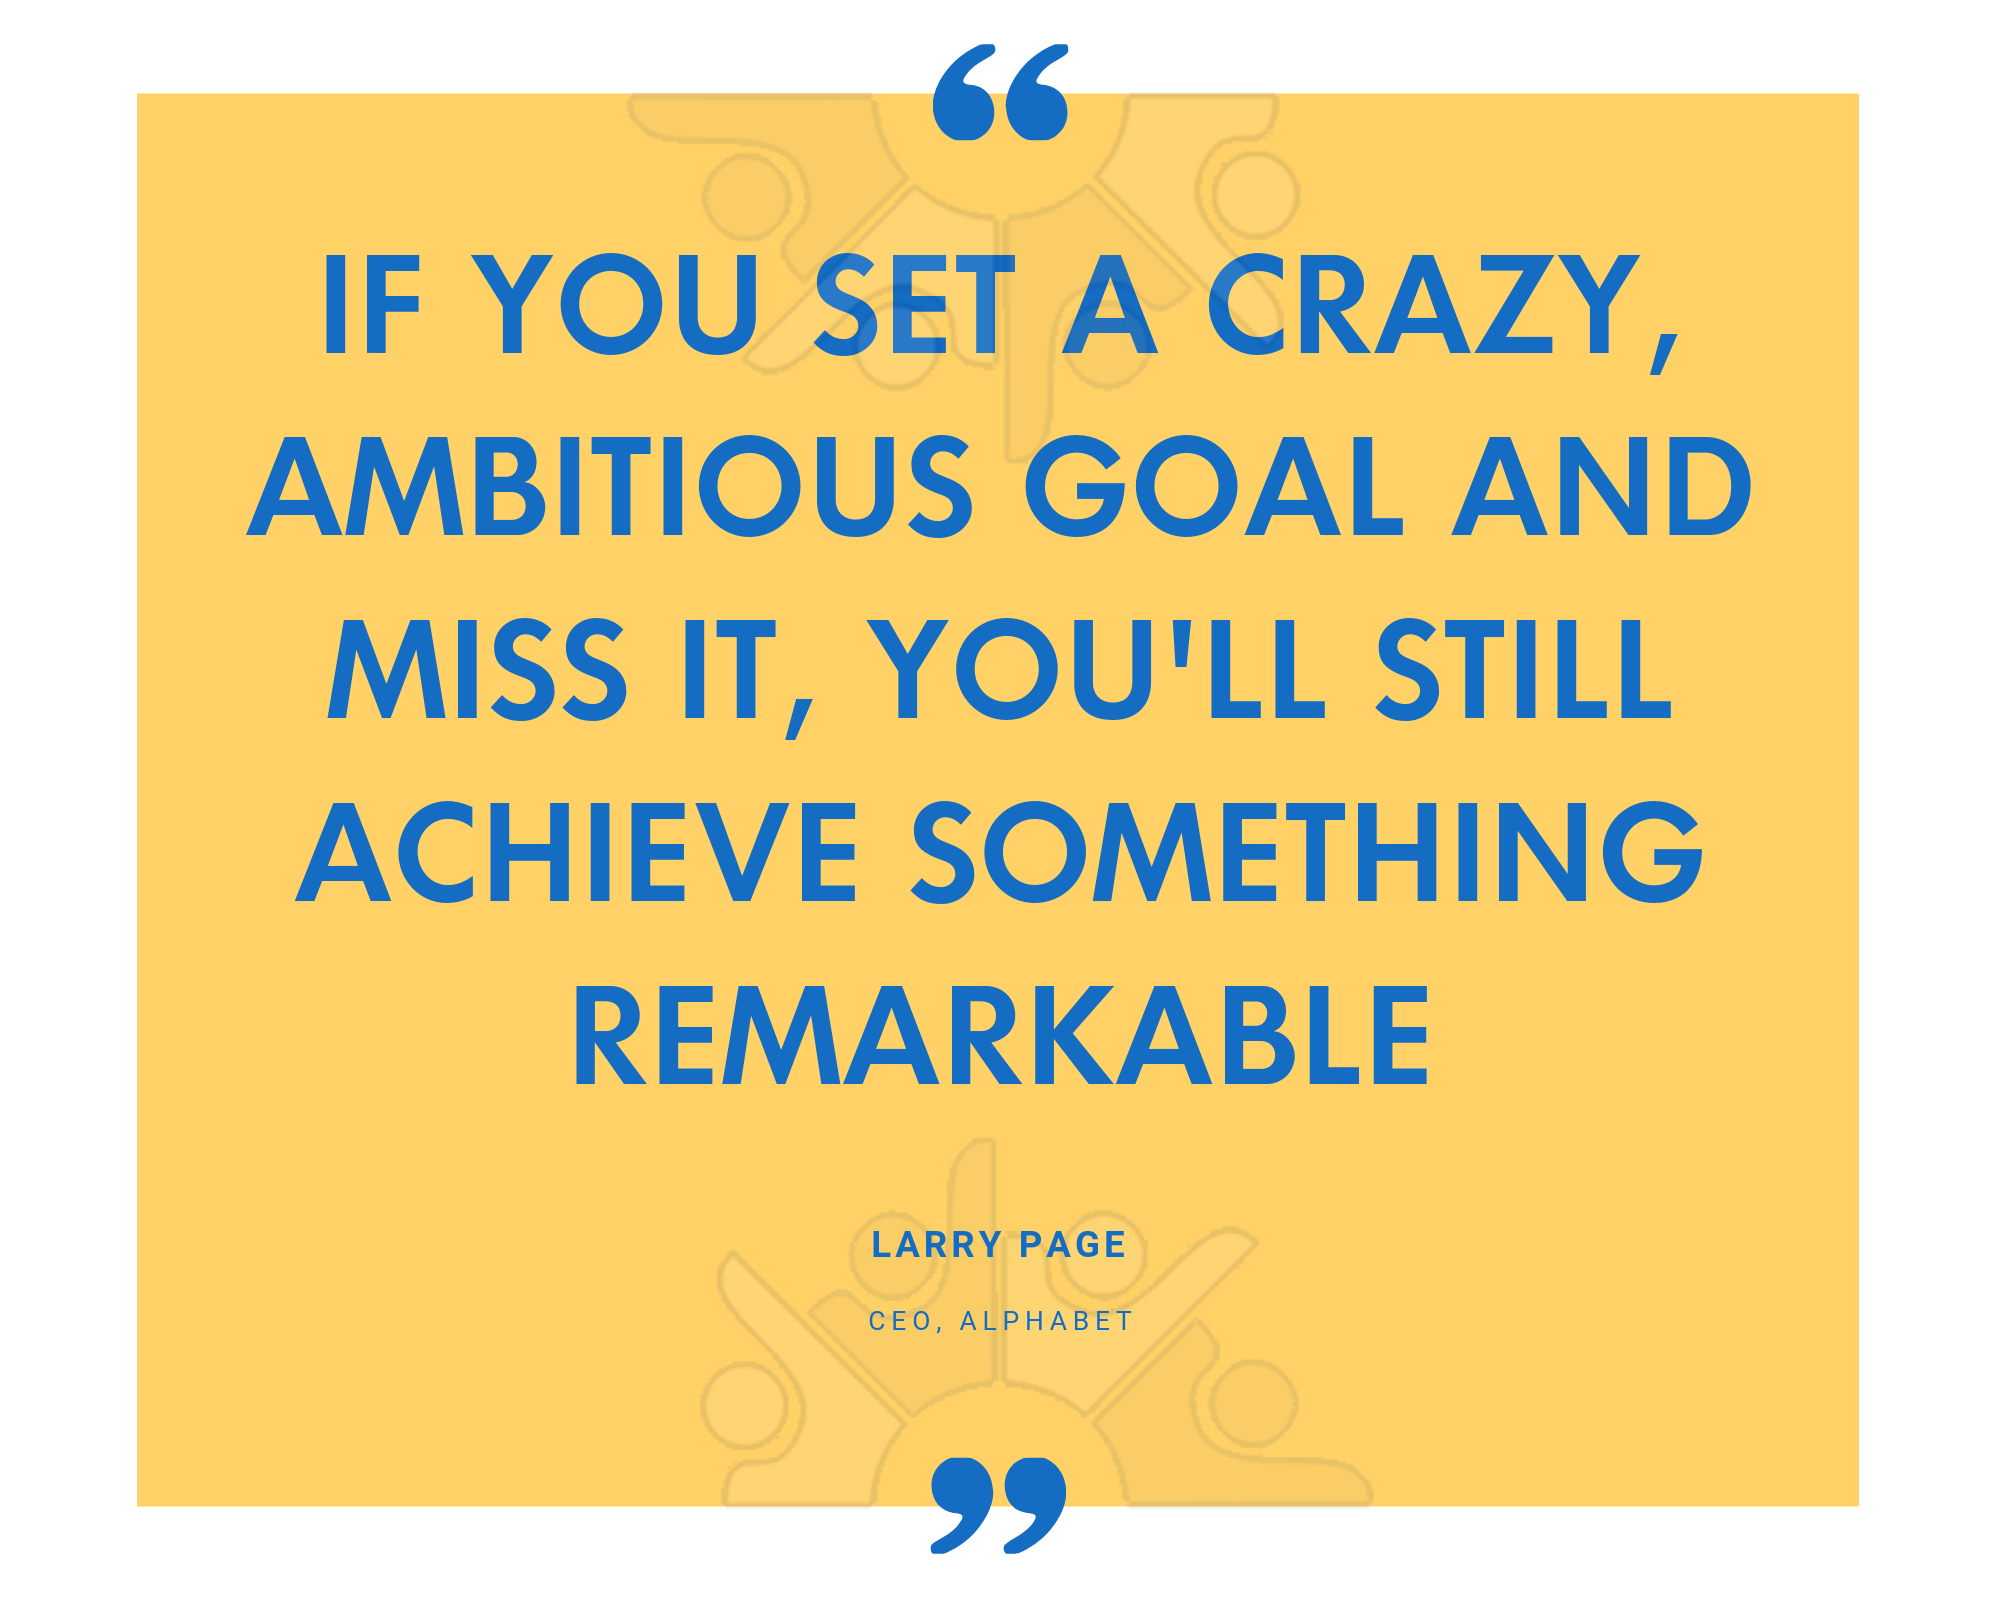 If you set a crazy, ambitious goal and miss it, youll still achieve something remarkable